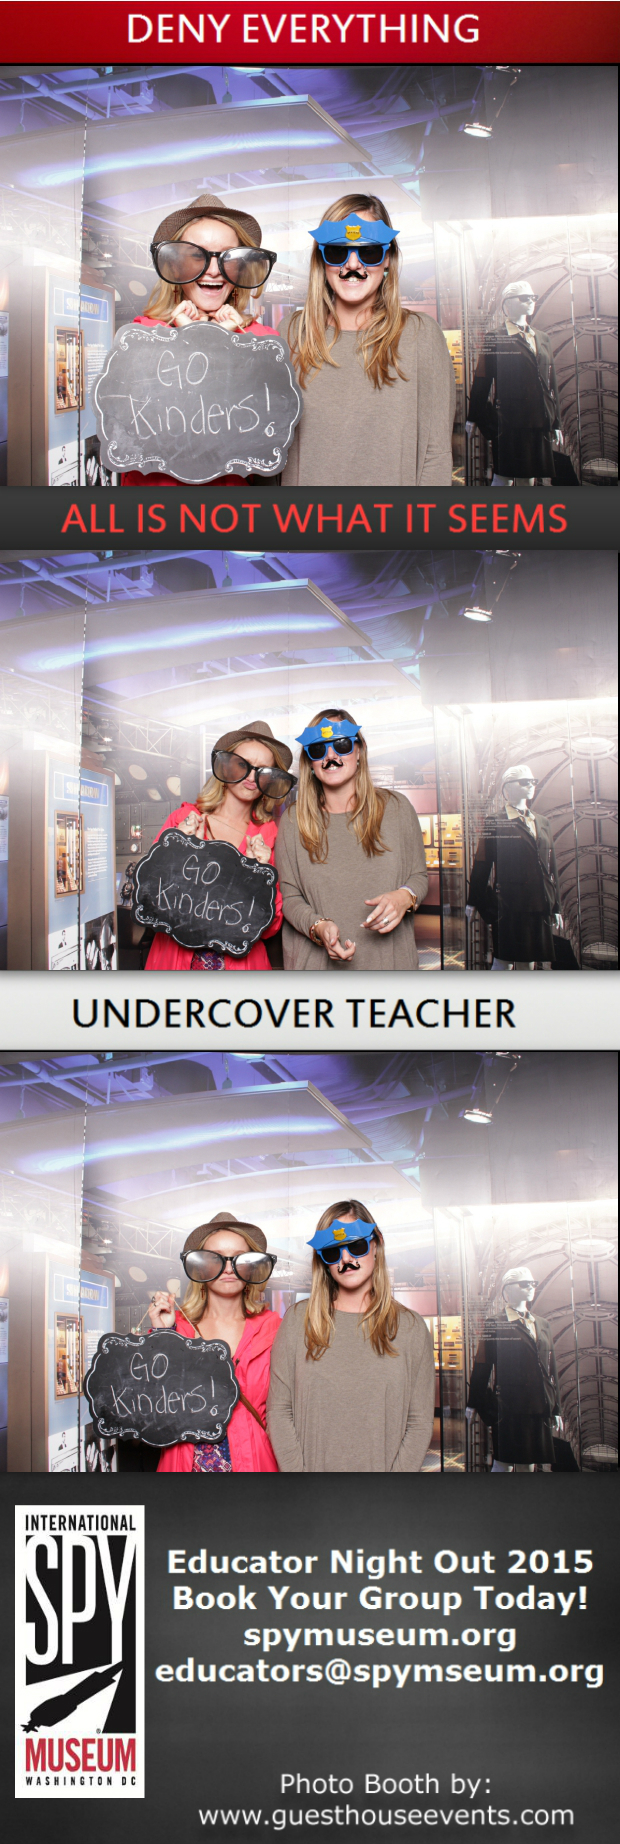 Guest House Events Photo Booth Spy Museum Educator Night Out (55).jpg